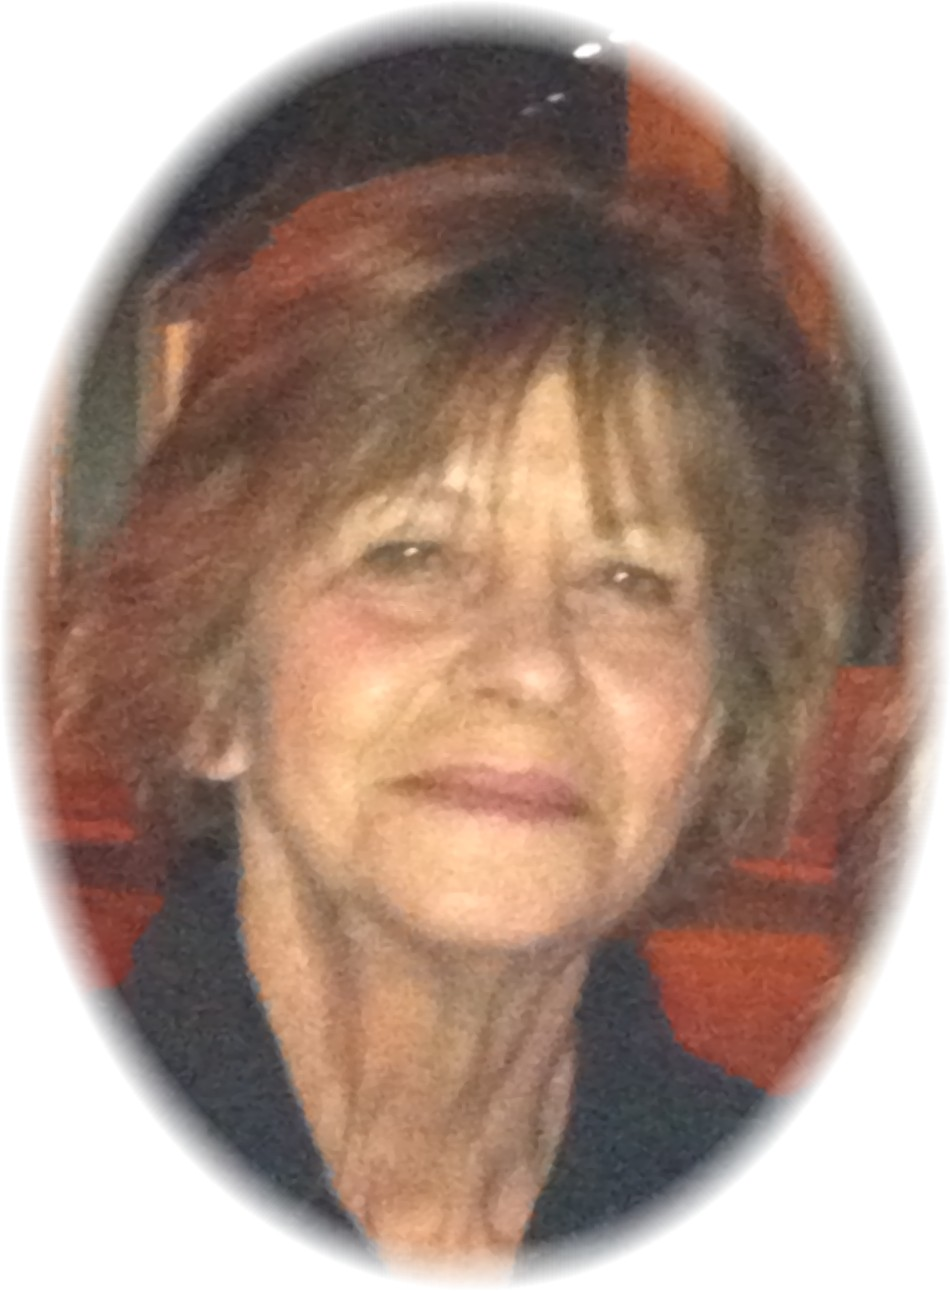 laura gibson age 68 of miles city